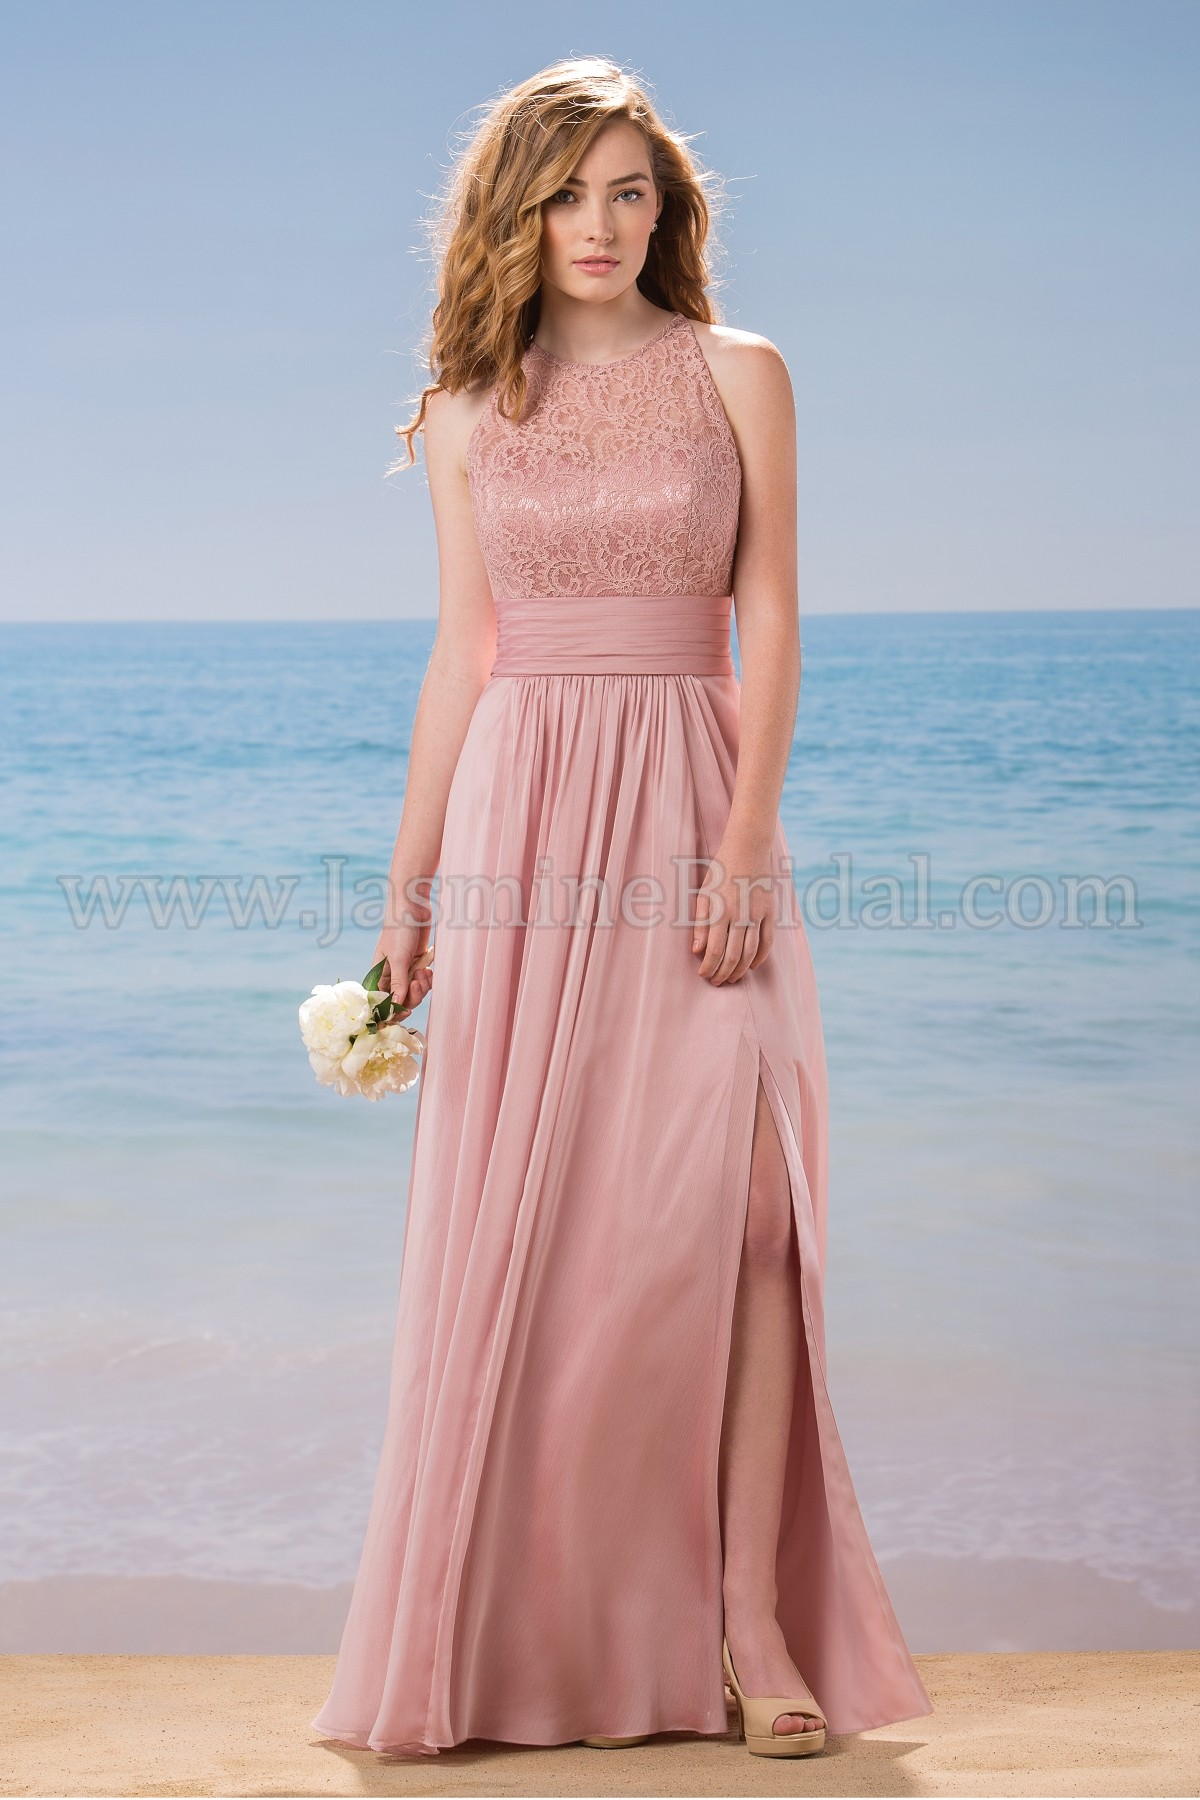 bridesmaid-dresses-L184015-F.jpg